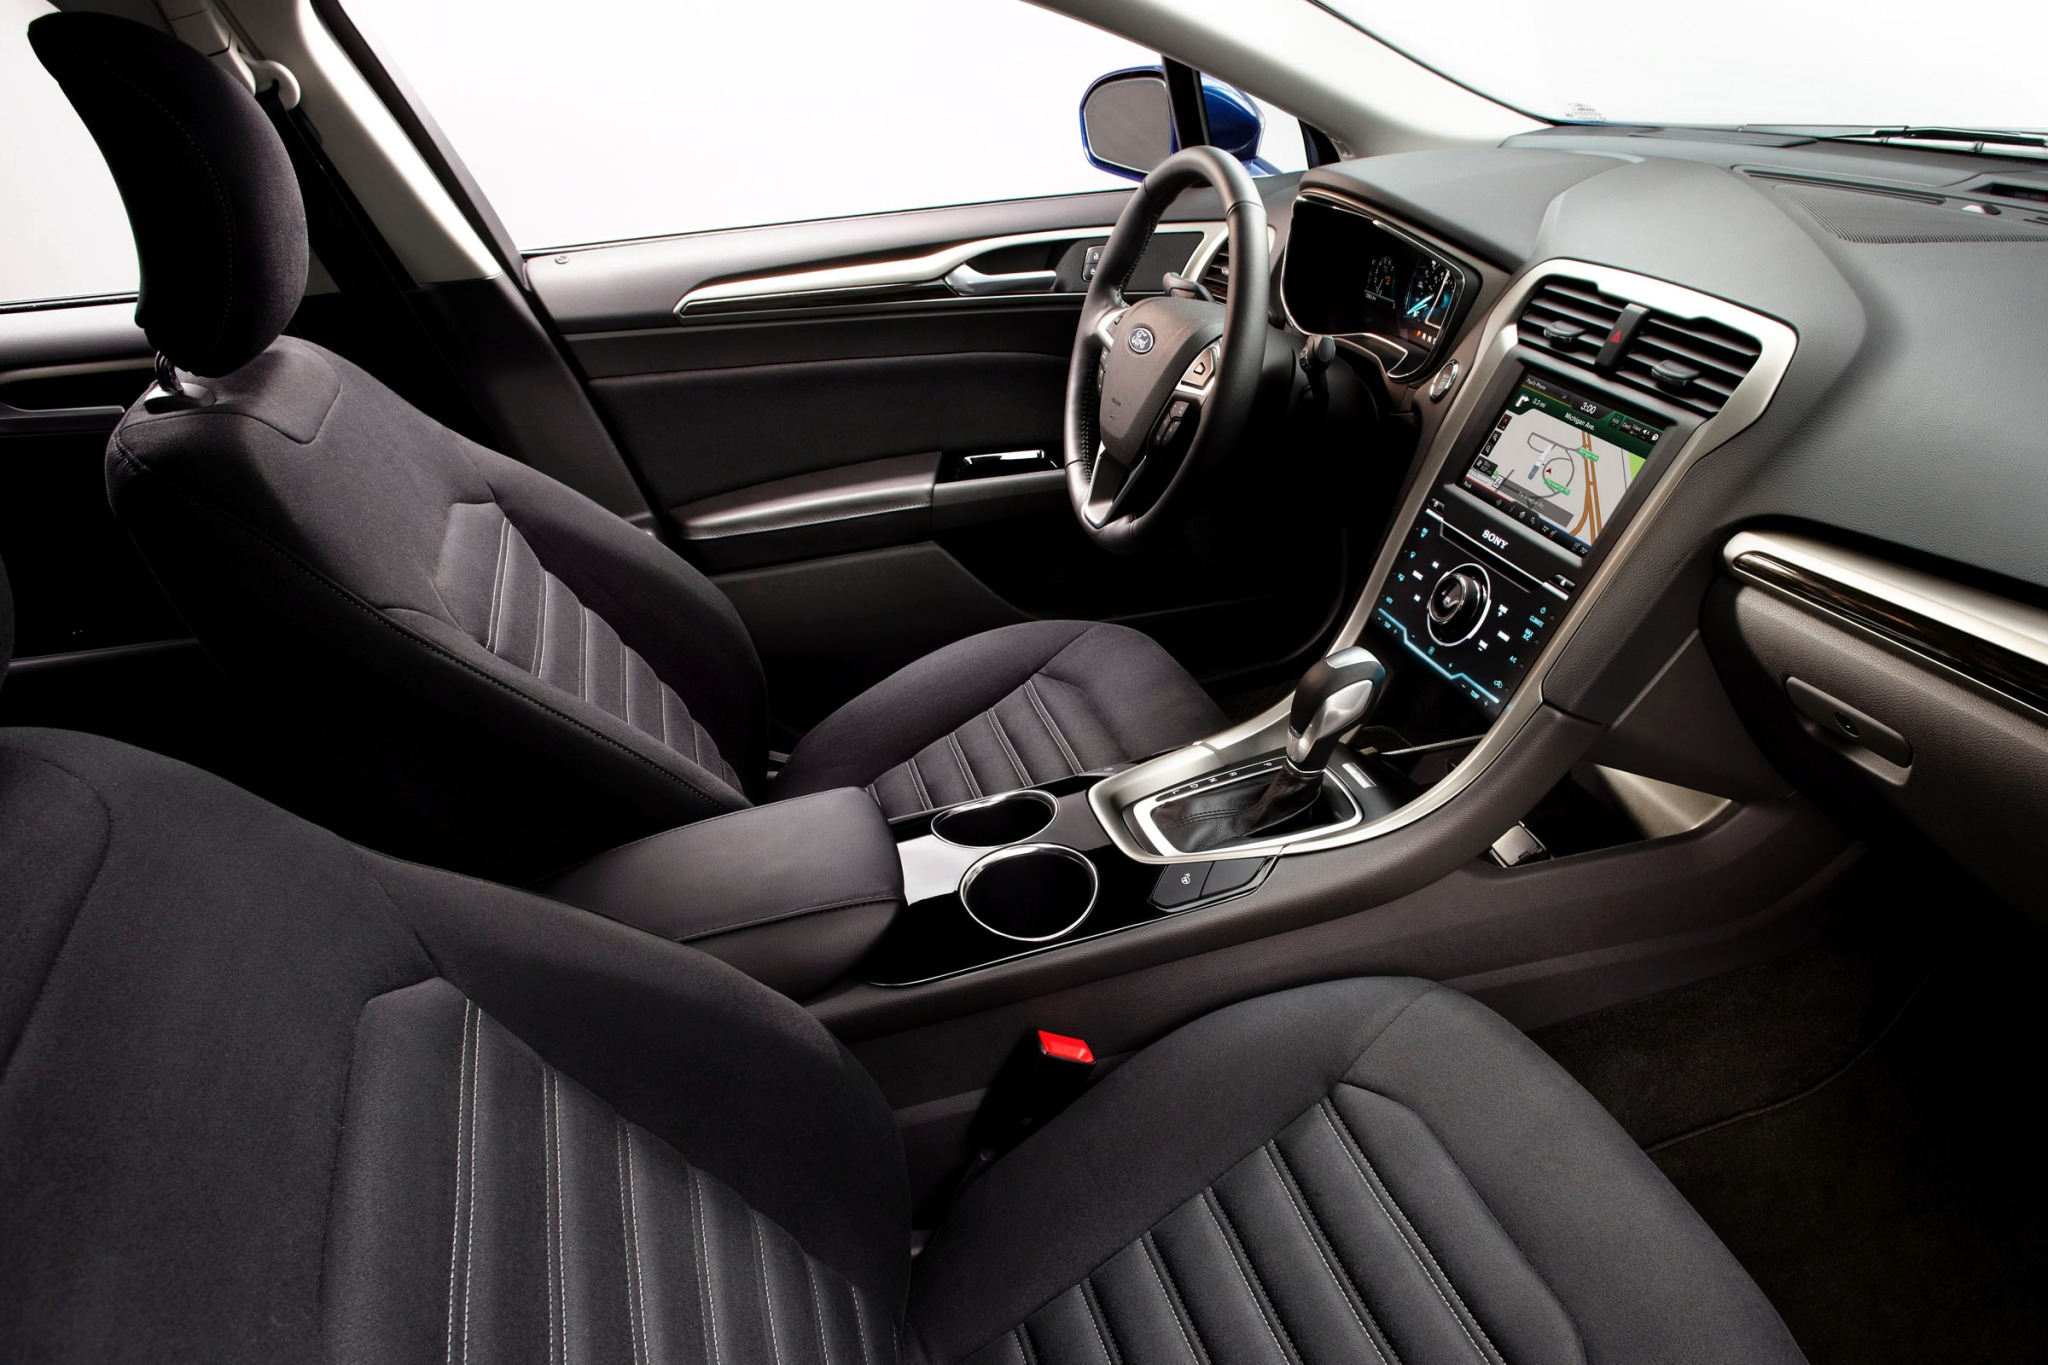 2013 Ford Fusion Hybrid S interior #7